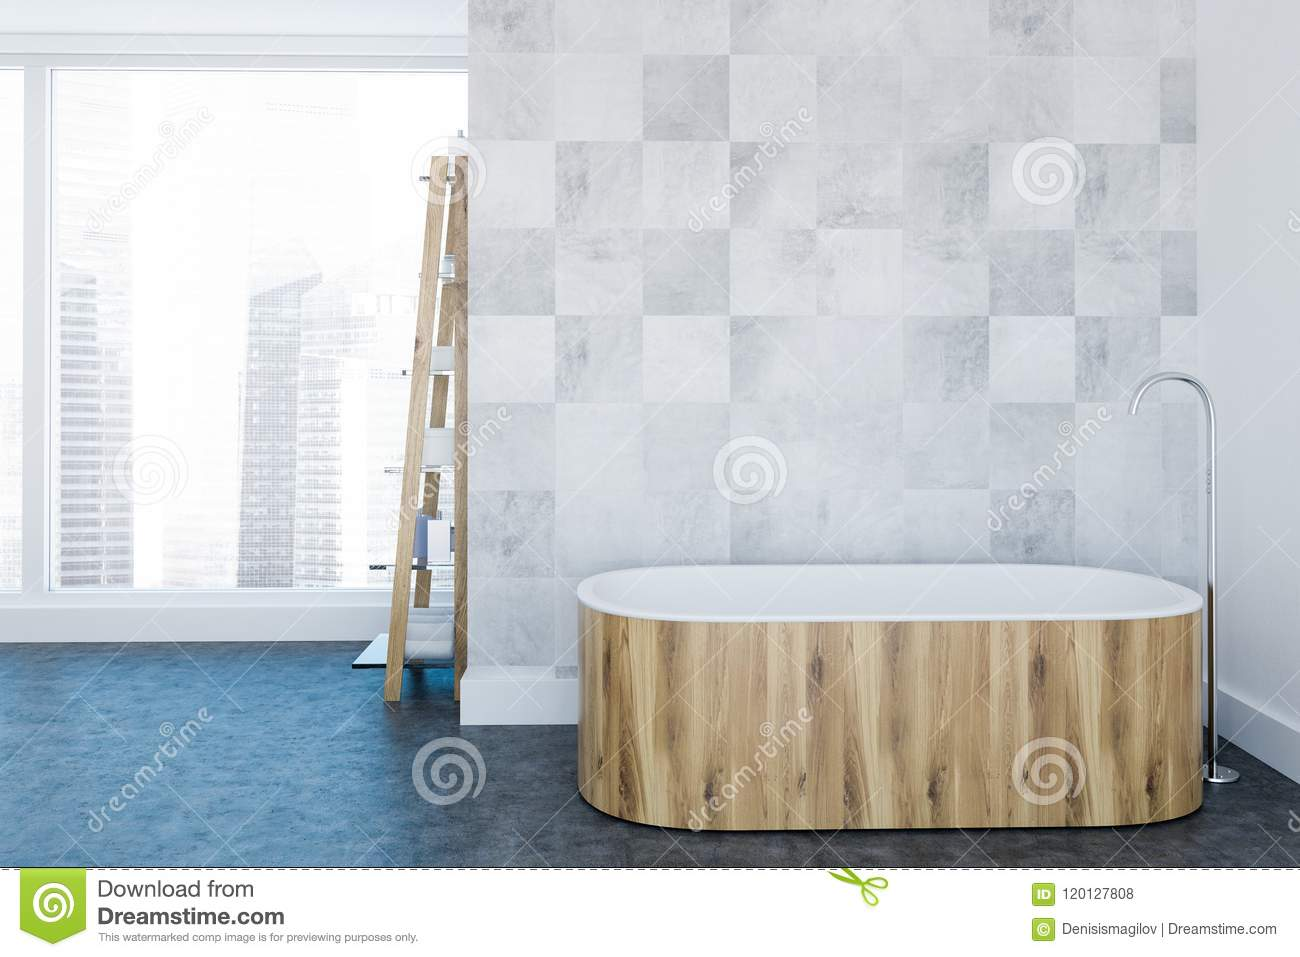 Loft White Luxury Bathroom Interior Wooden Tub Stock Illustration Illustration Of Object Clean 120127808